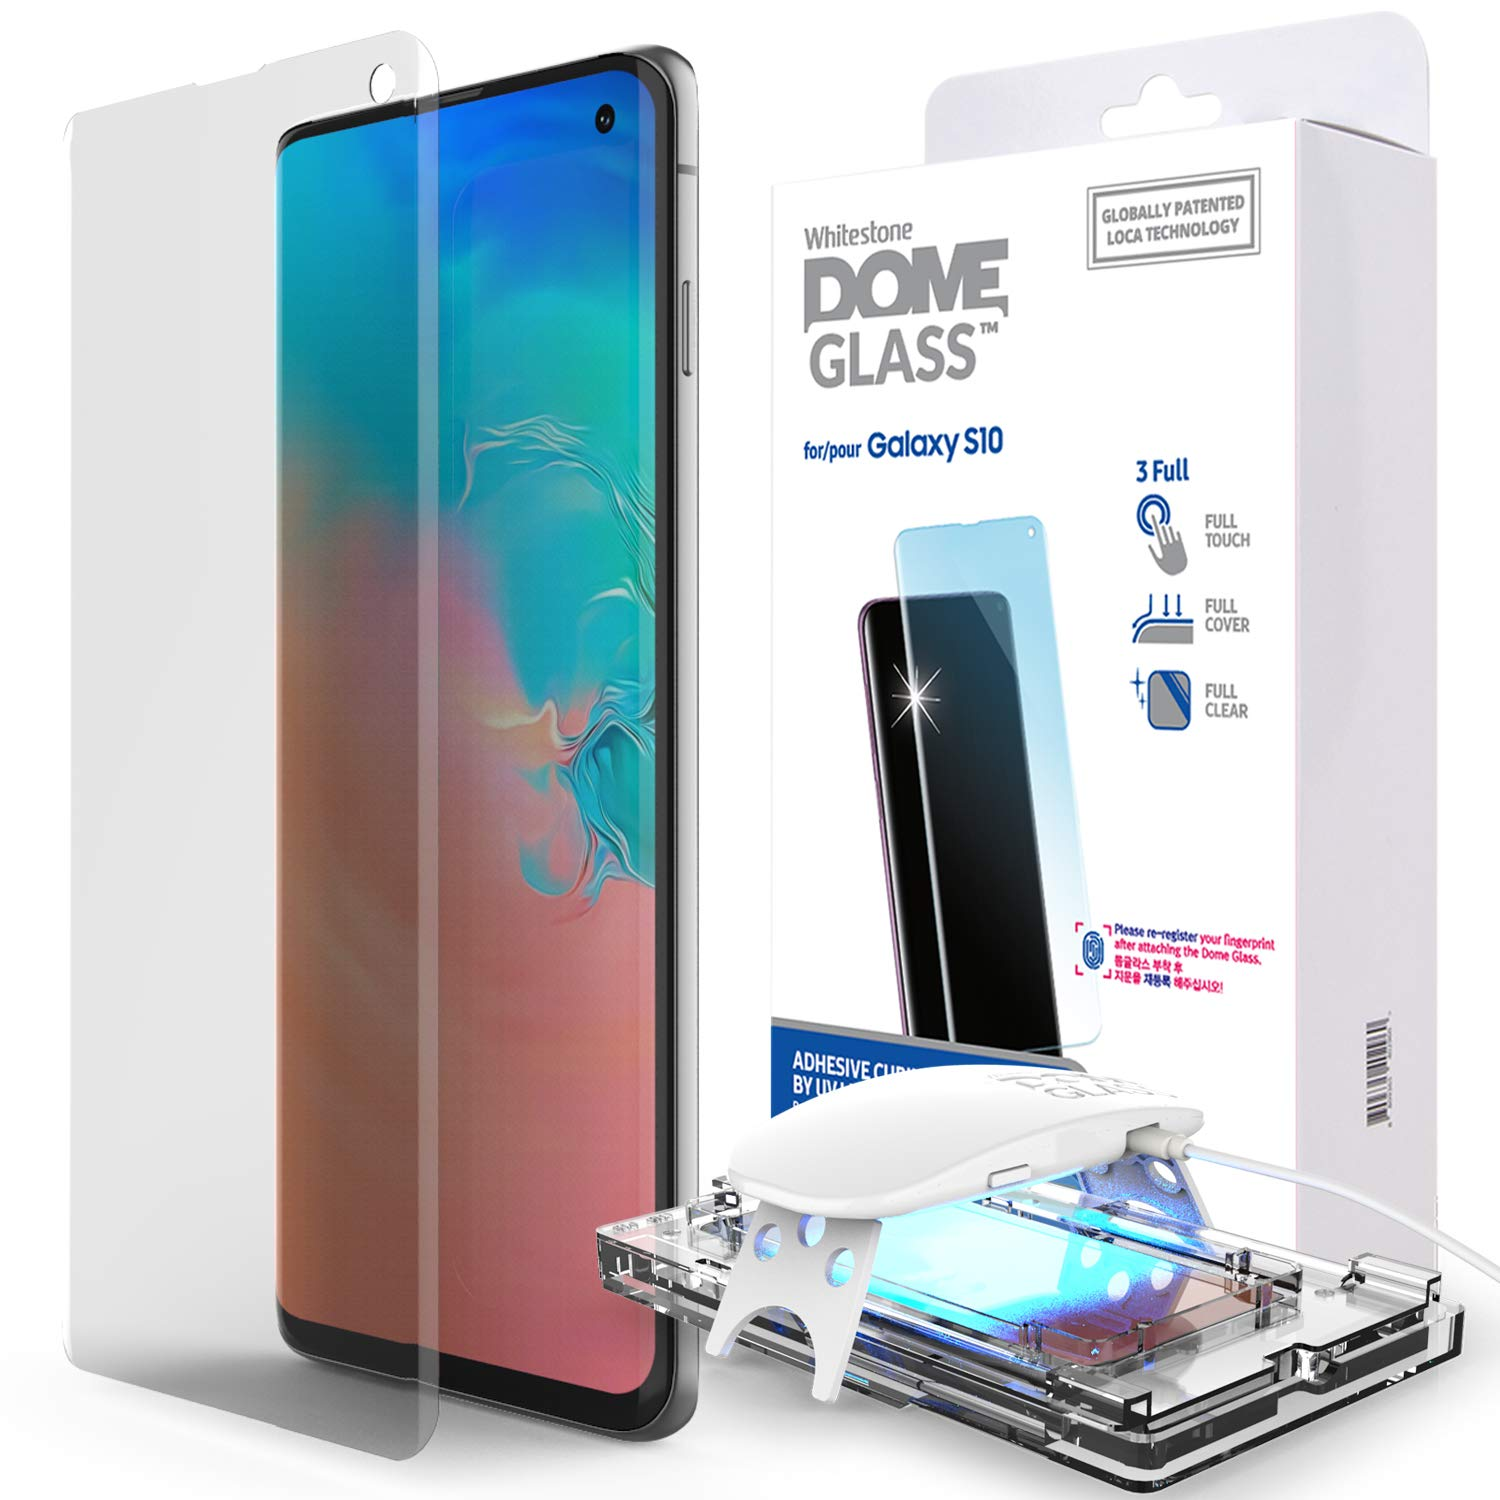 Galaxy S10 Screen Protector, [Dome Glass] Full 3D Curved Edge Tempered Glass [Exclusive Solution for Ultrasonic Fingerprint] Easy Install Kit by Whitestone for Samsung Galaxy S10 (2019) - 1 Pack by Dome Glass